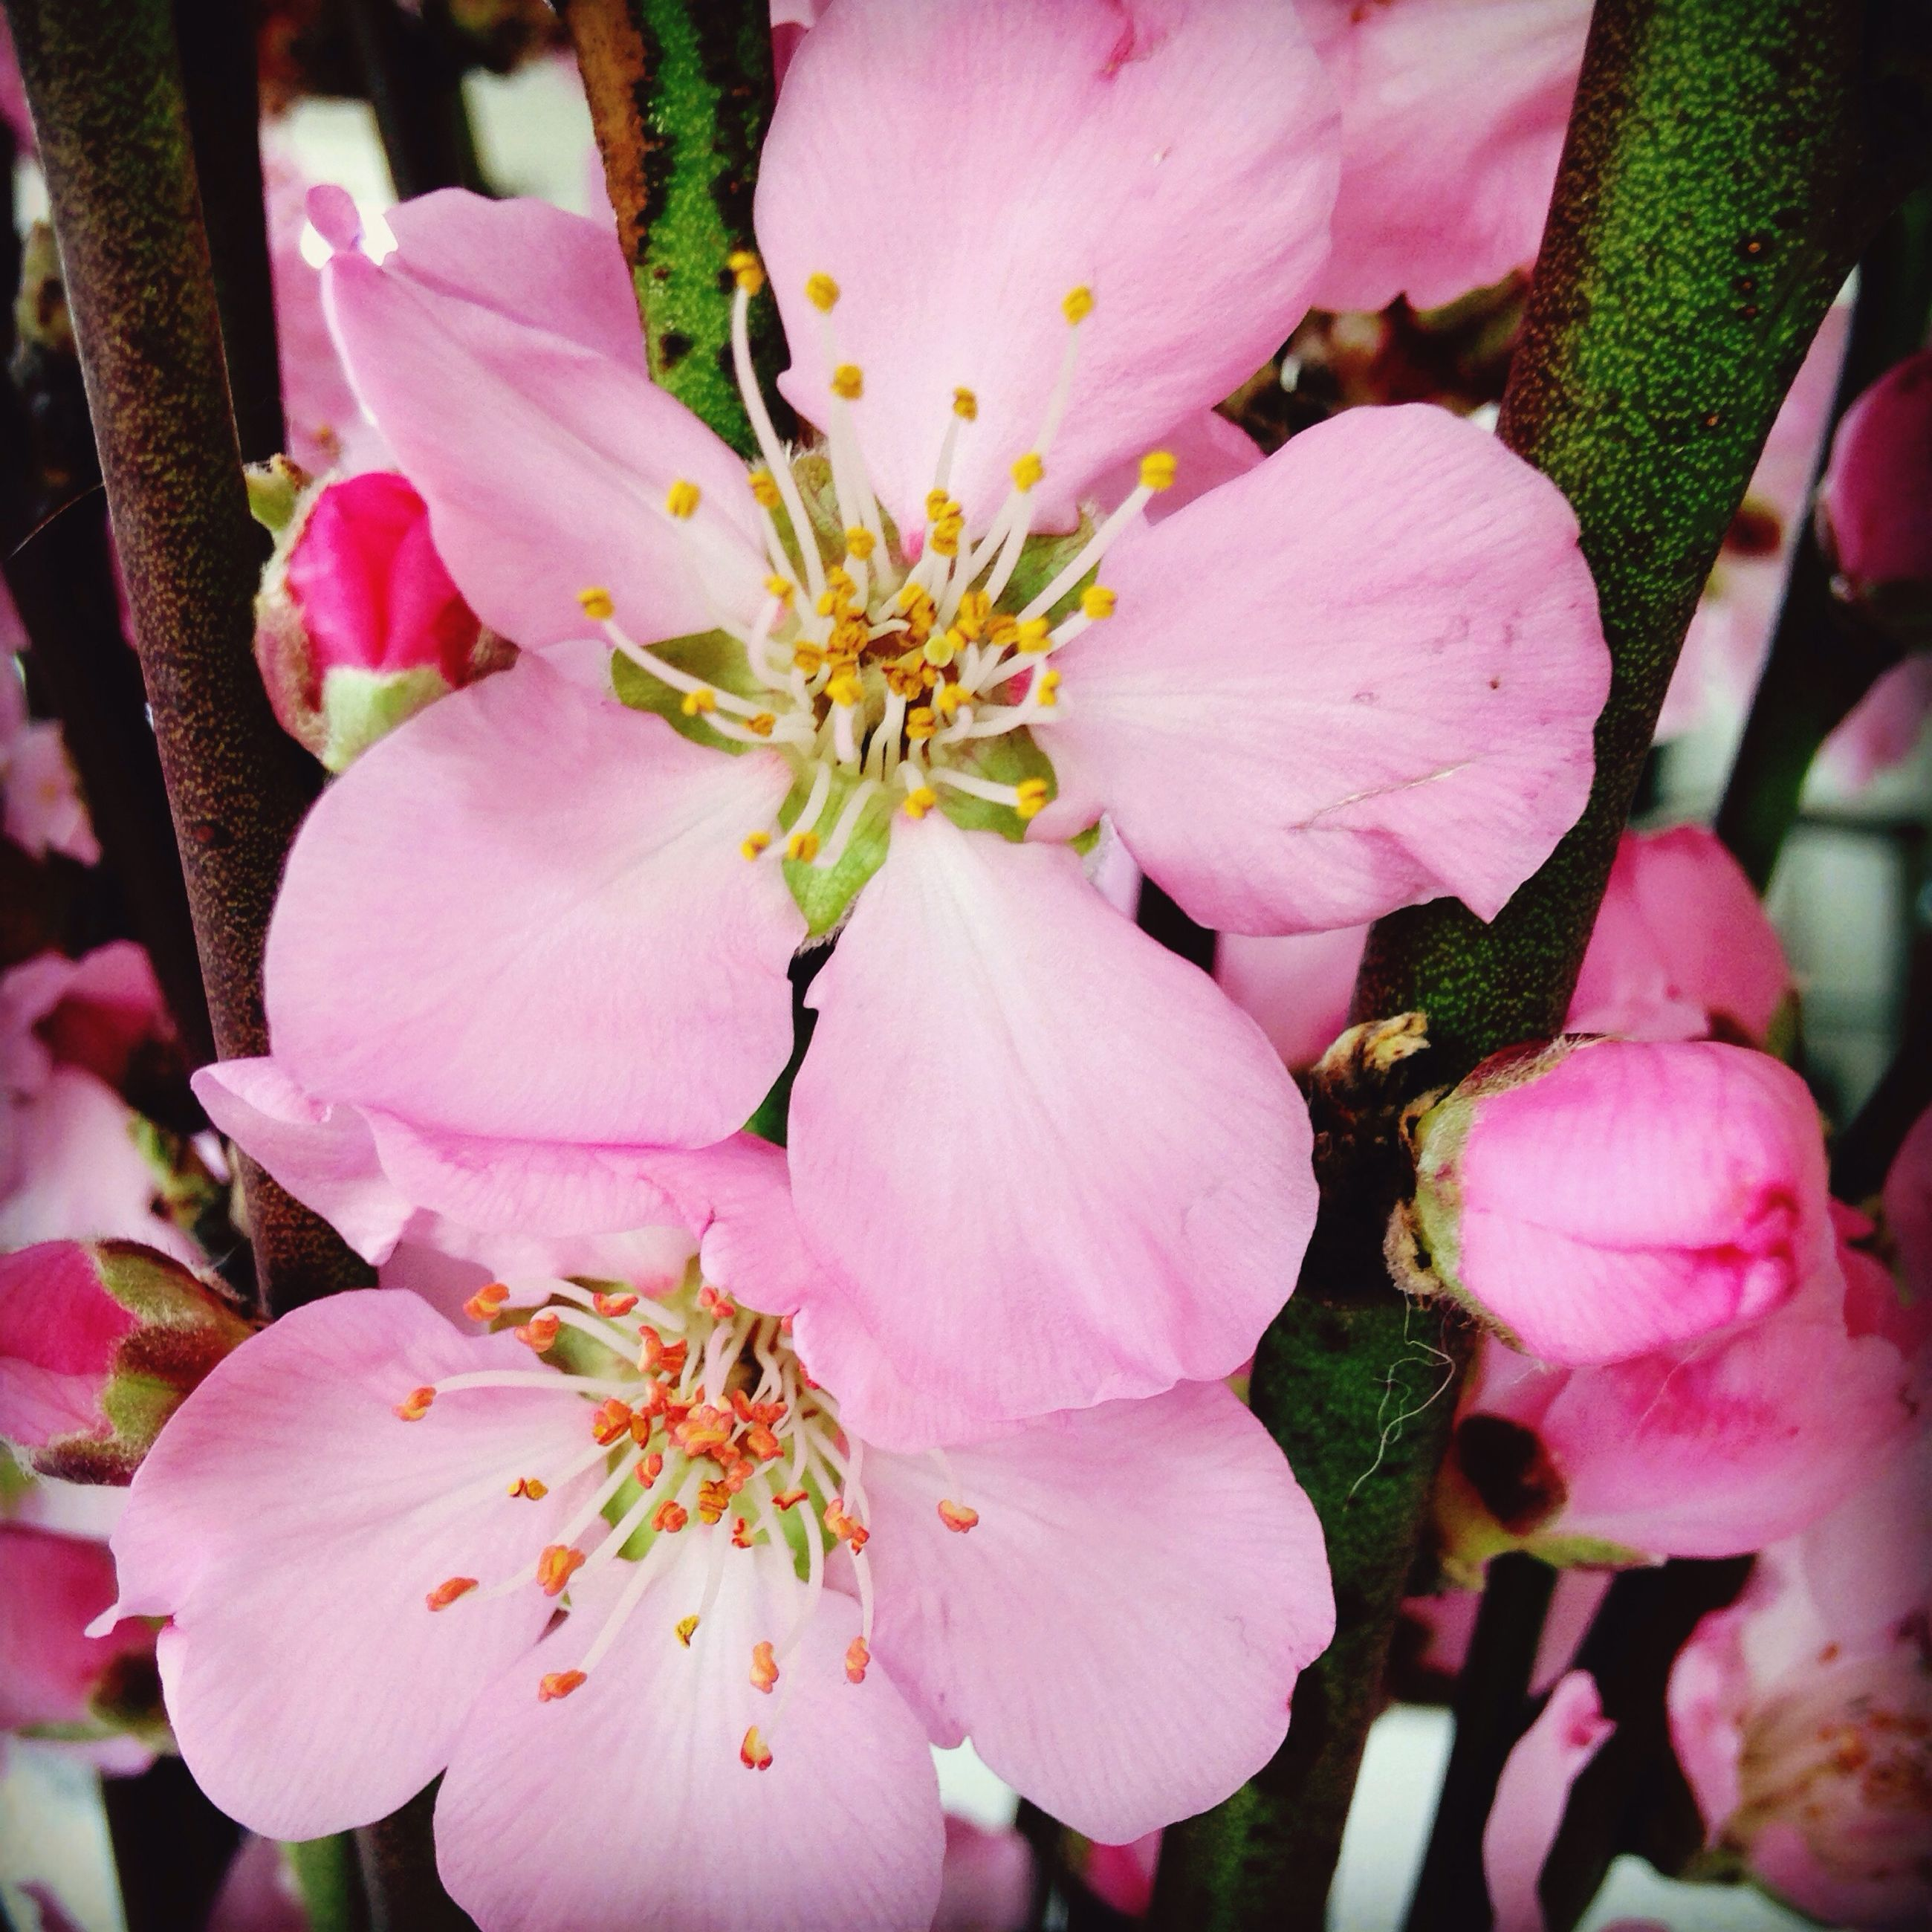 flower, freshness, petal, pink color, fragility, growth, beauty in nature, flower head, nature, close-up, blooming, in bloom, blossom, pink, stamen, plant, focus on foreground, botany, springtime, outdoors